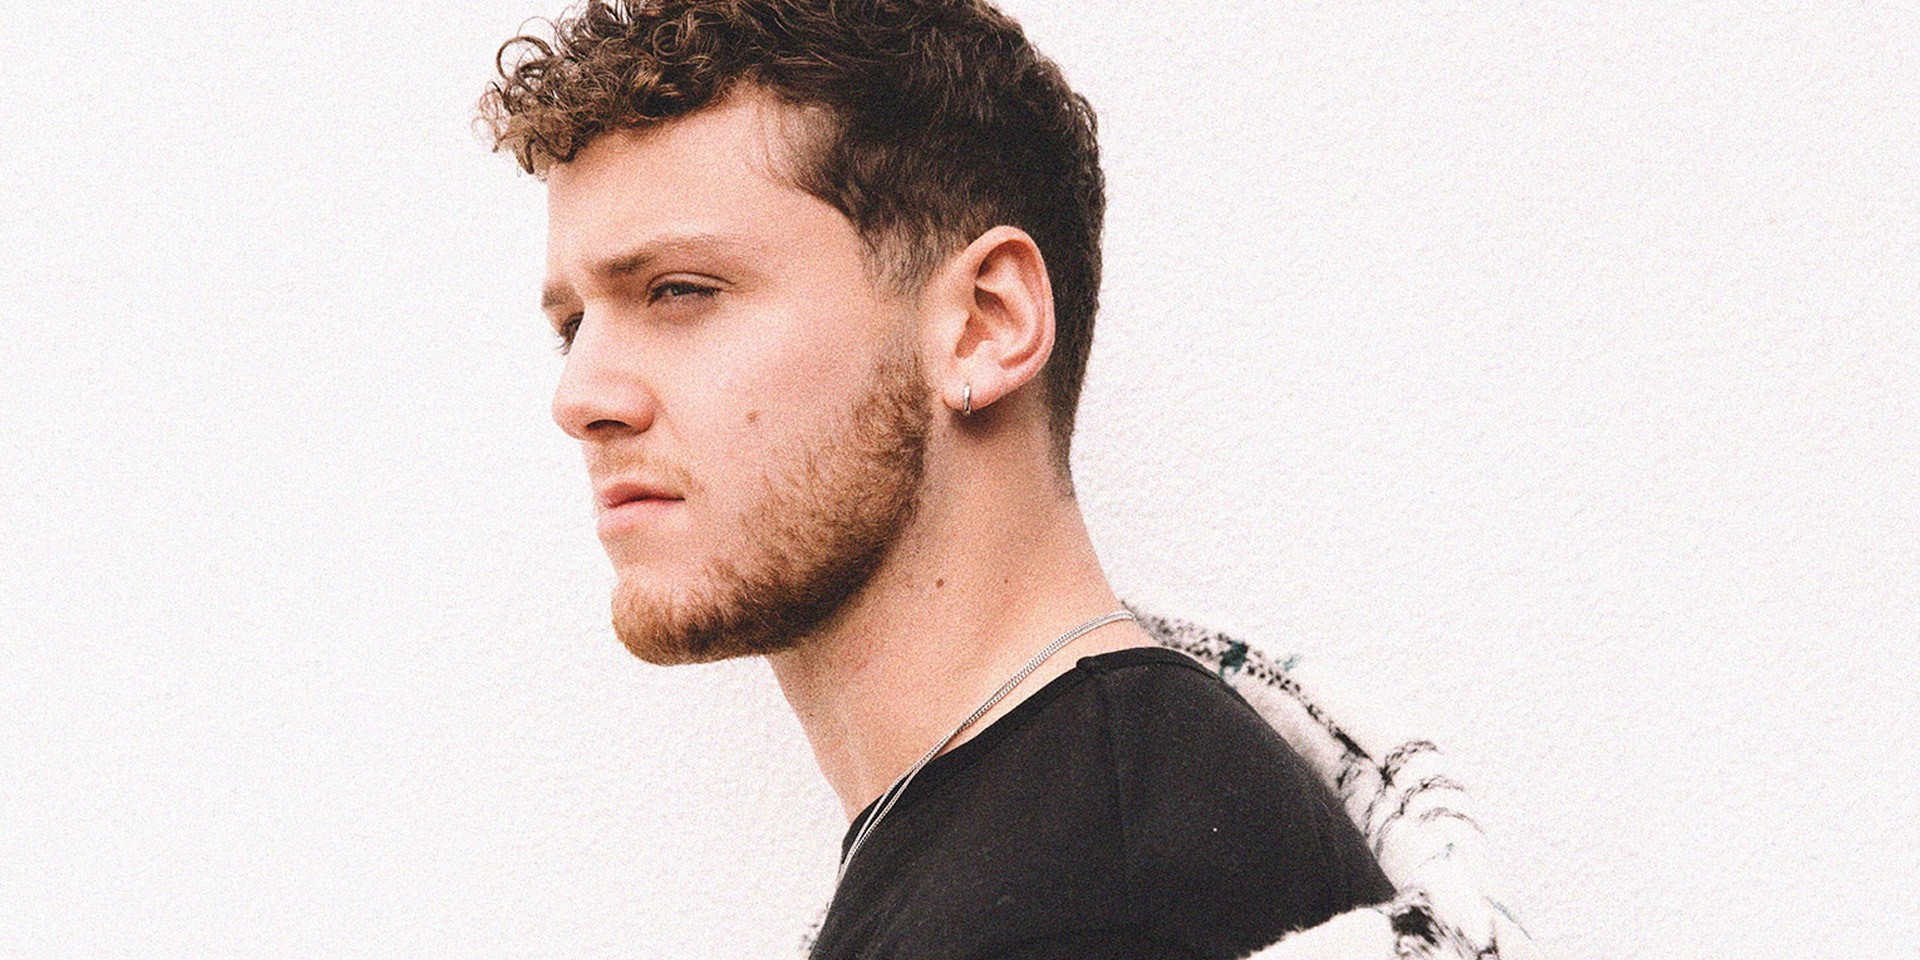 Bazzi is coming to Manila this July